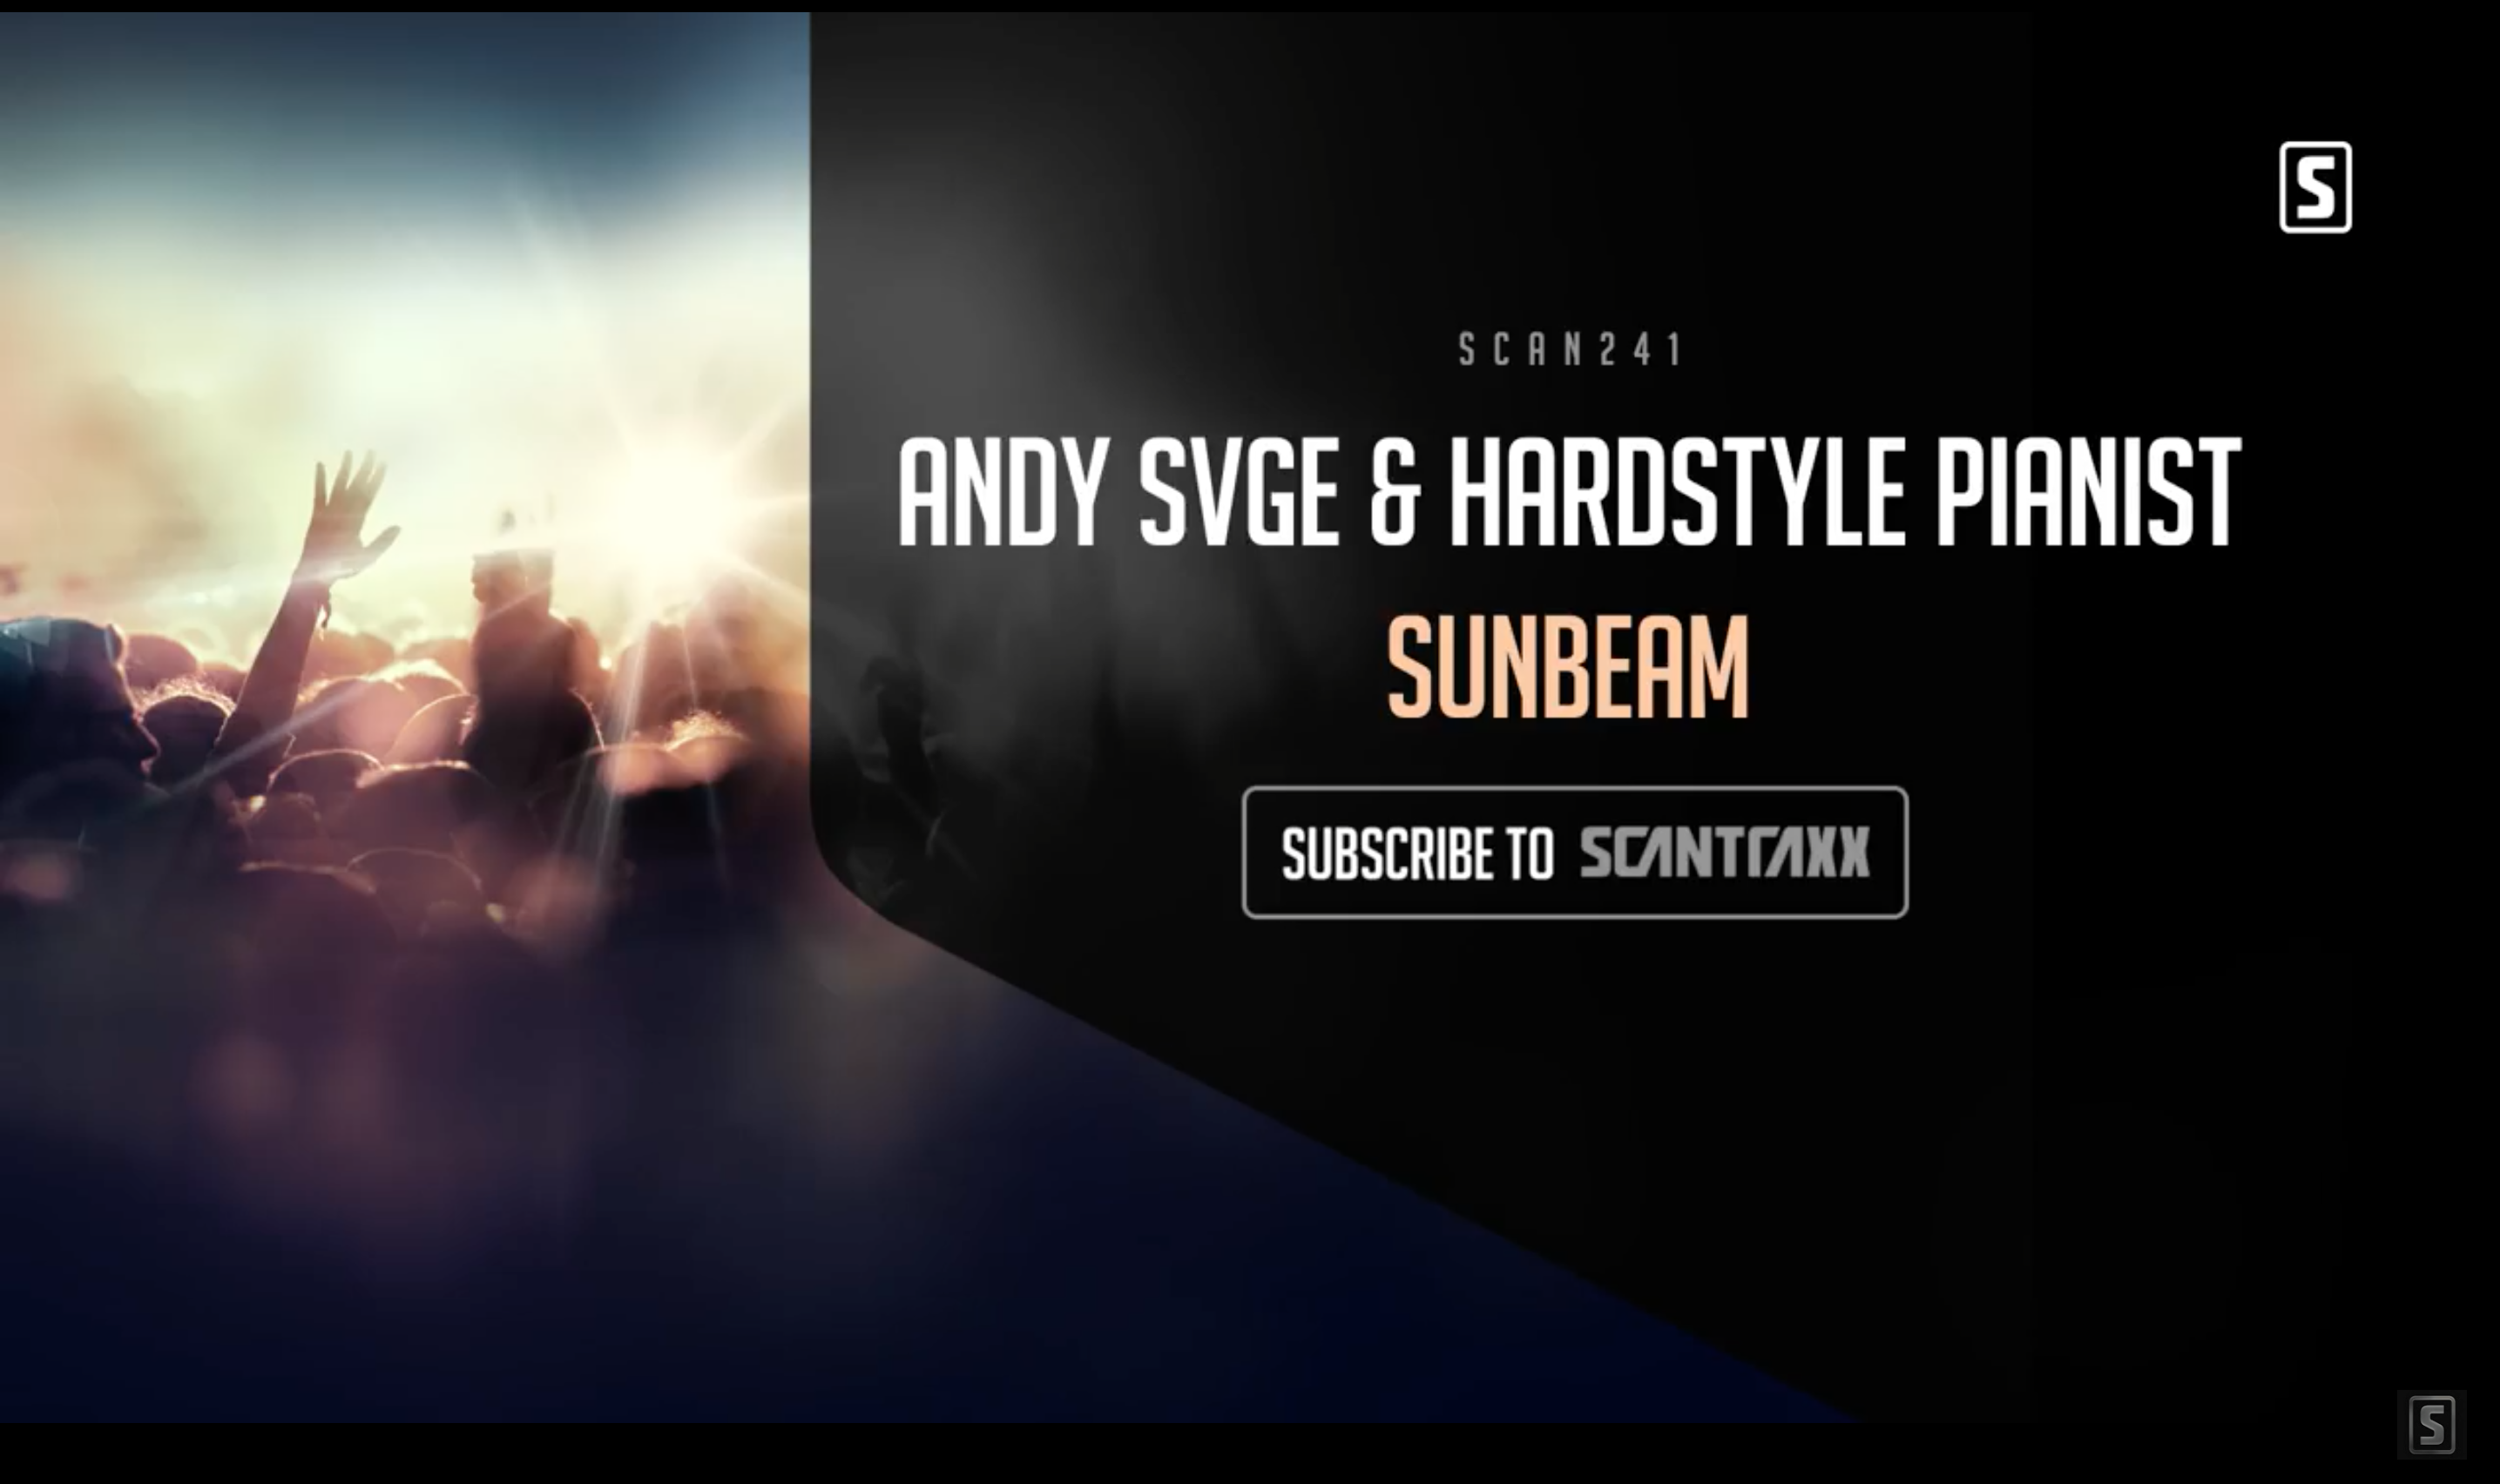 Single 'Sunbeam' by ANDY SVGE & Hardstyle Pianist already over 60k views on Youtube